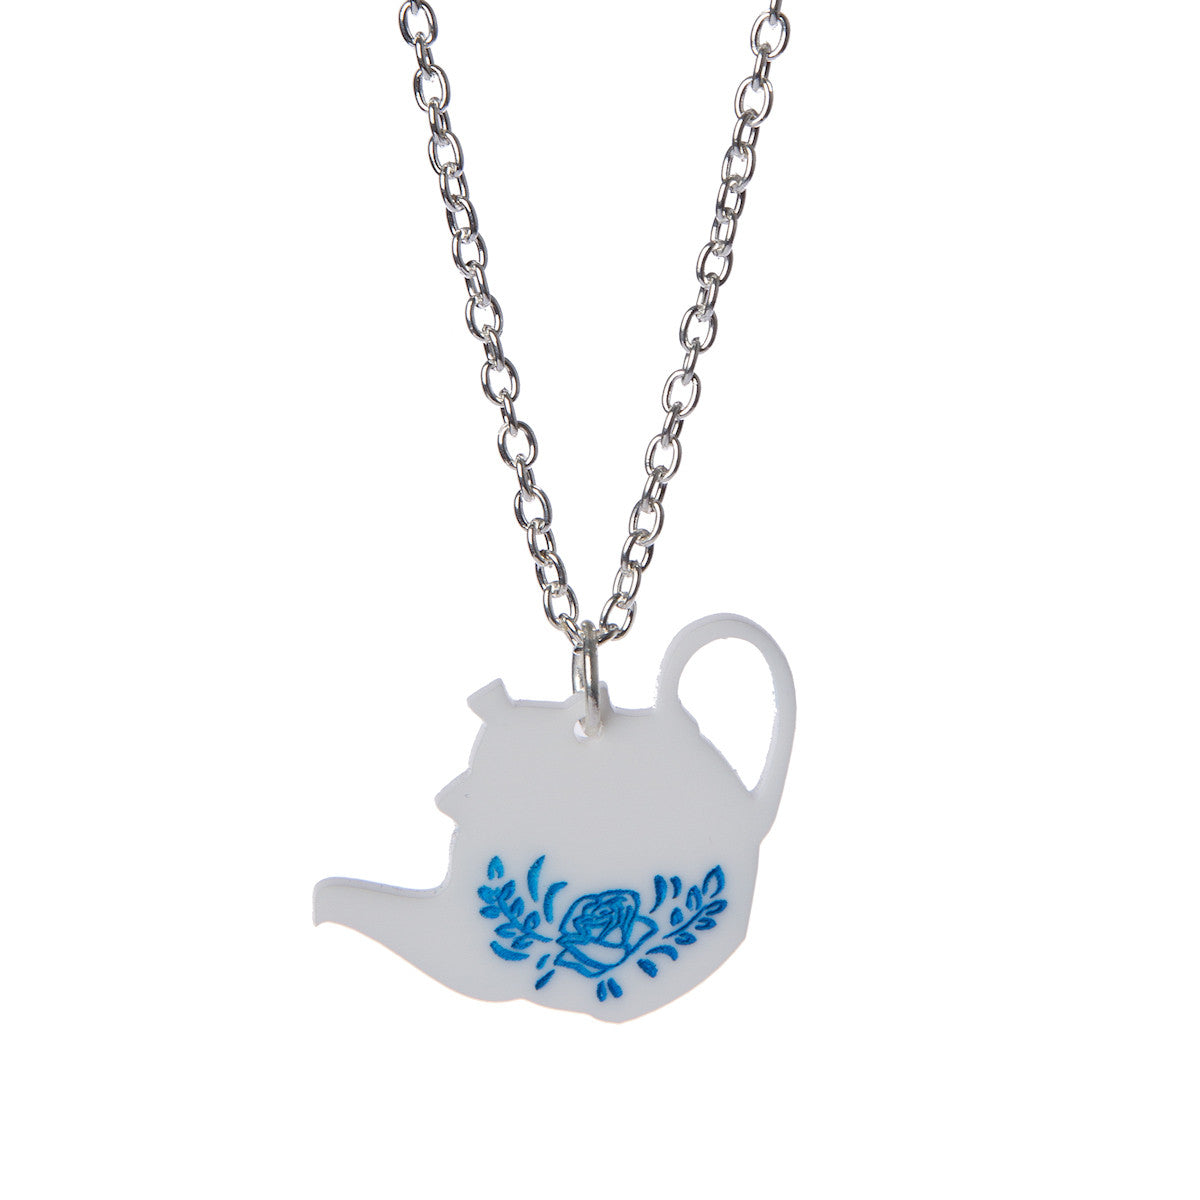 Sugar & Vice Teapot Necklace